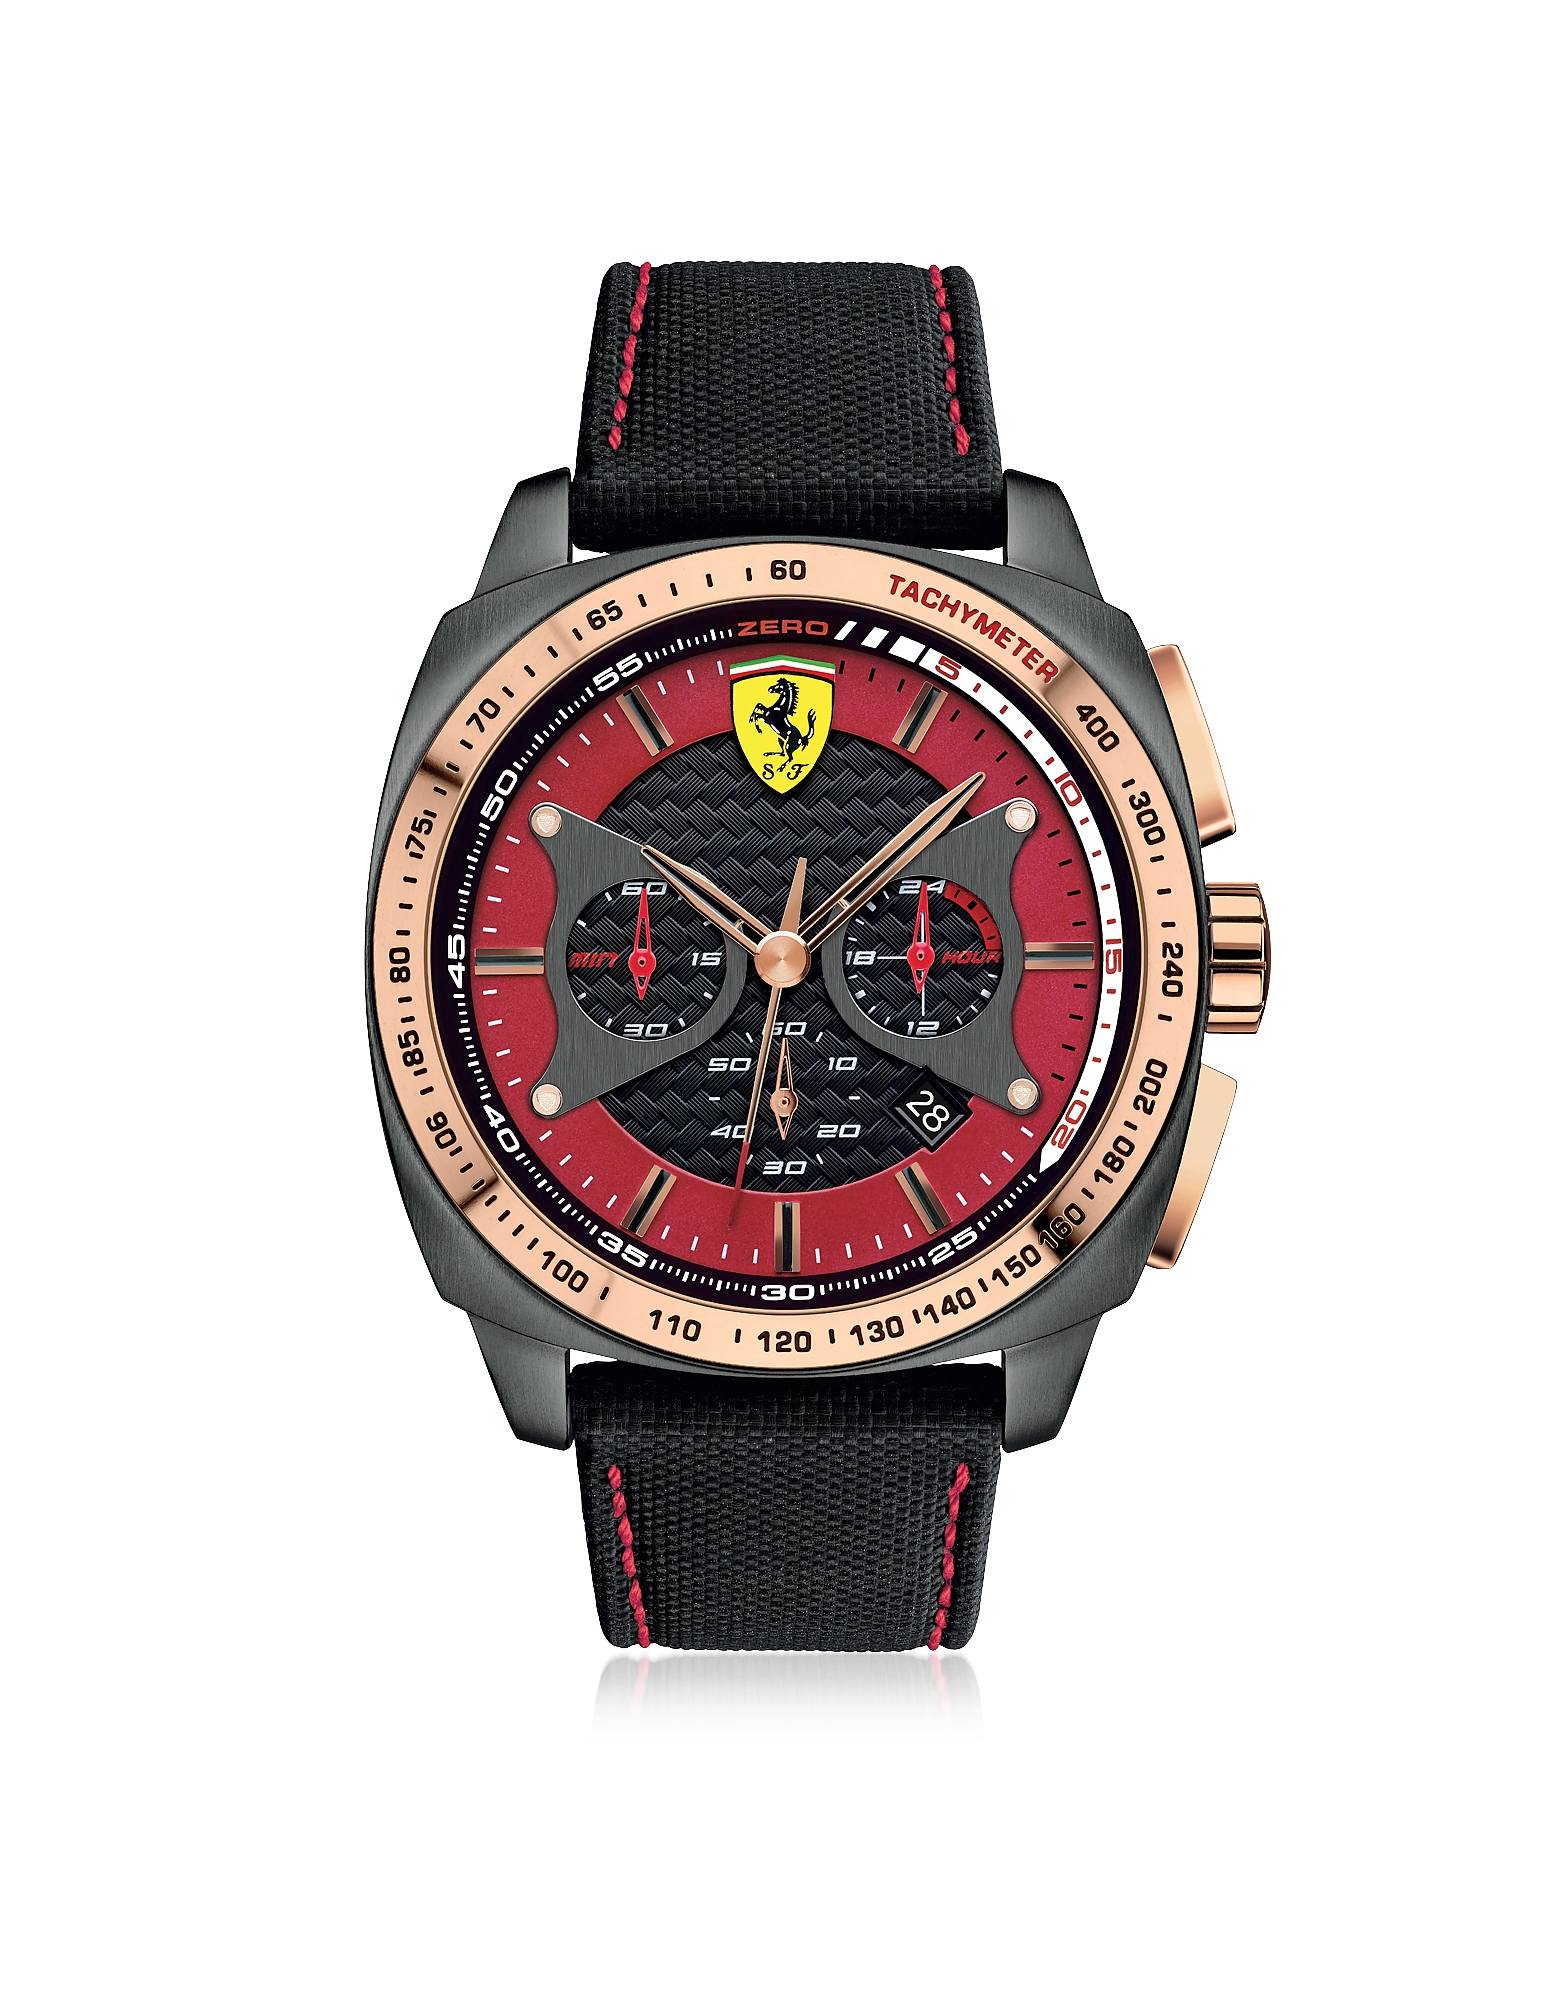 Ferrari Men's Watches, Aero Evo Stainless Steel Case and Black Nylon Strap Men's Watch